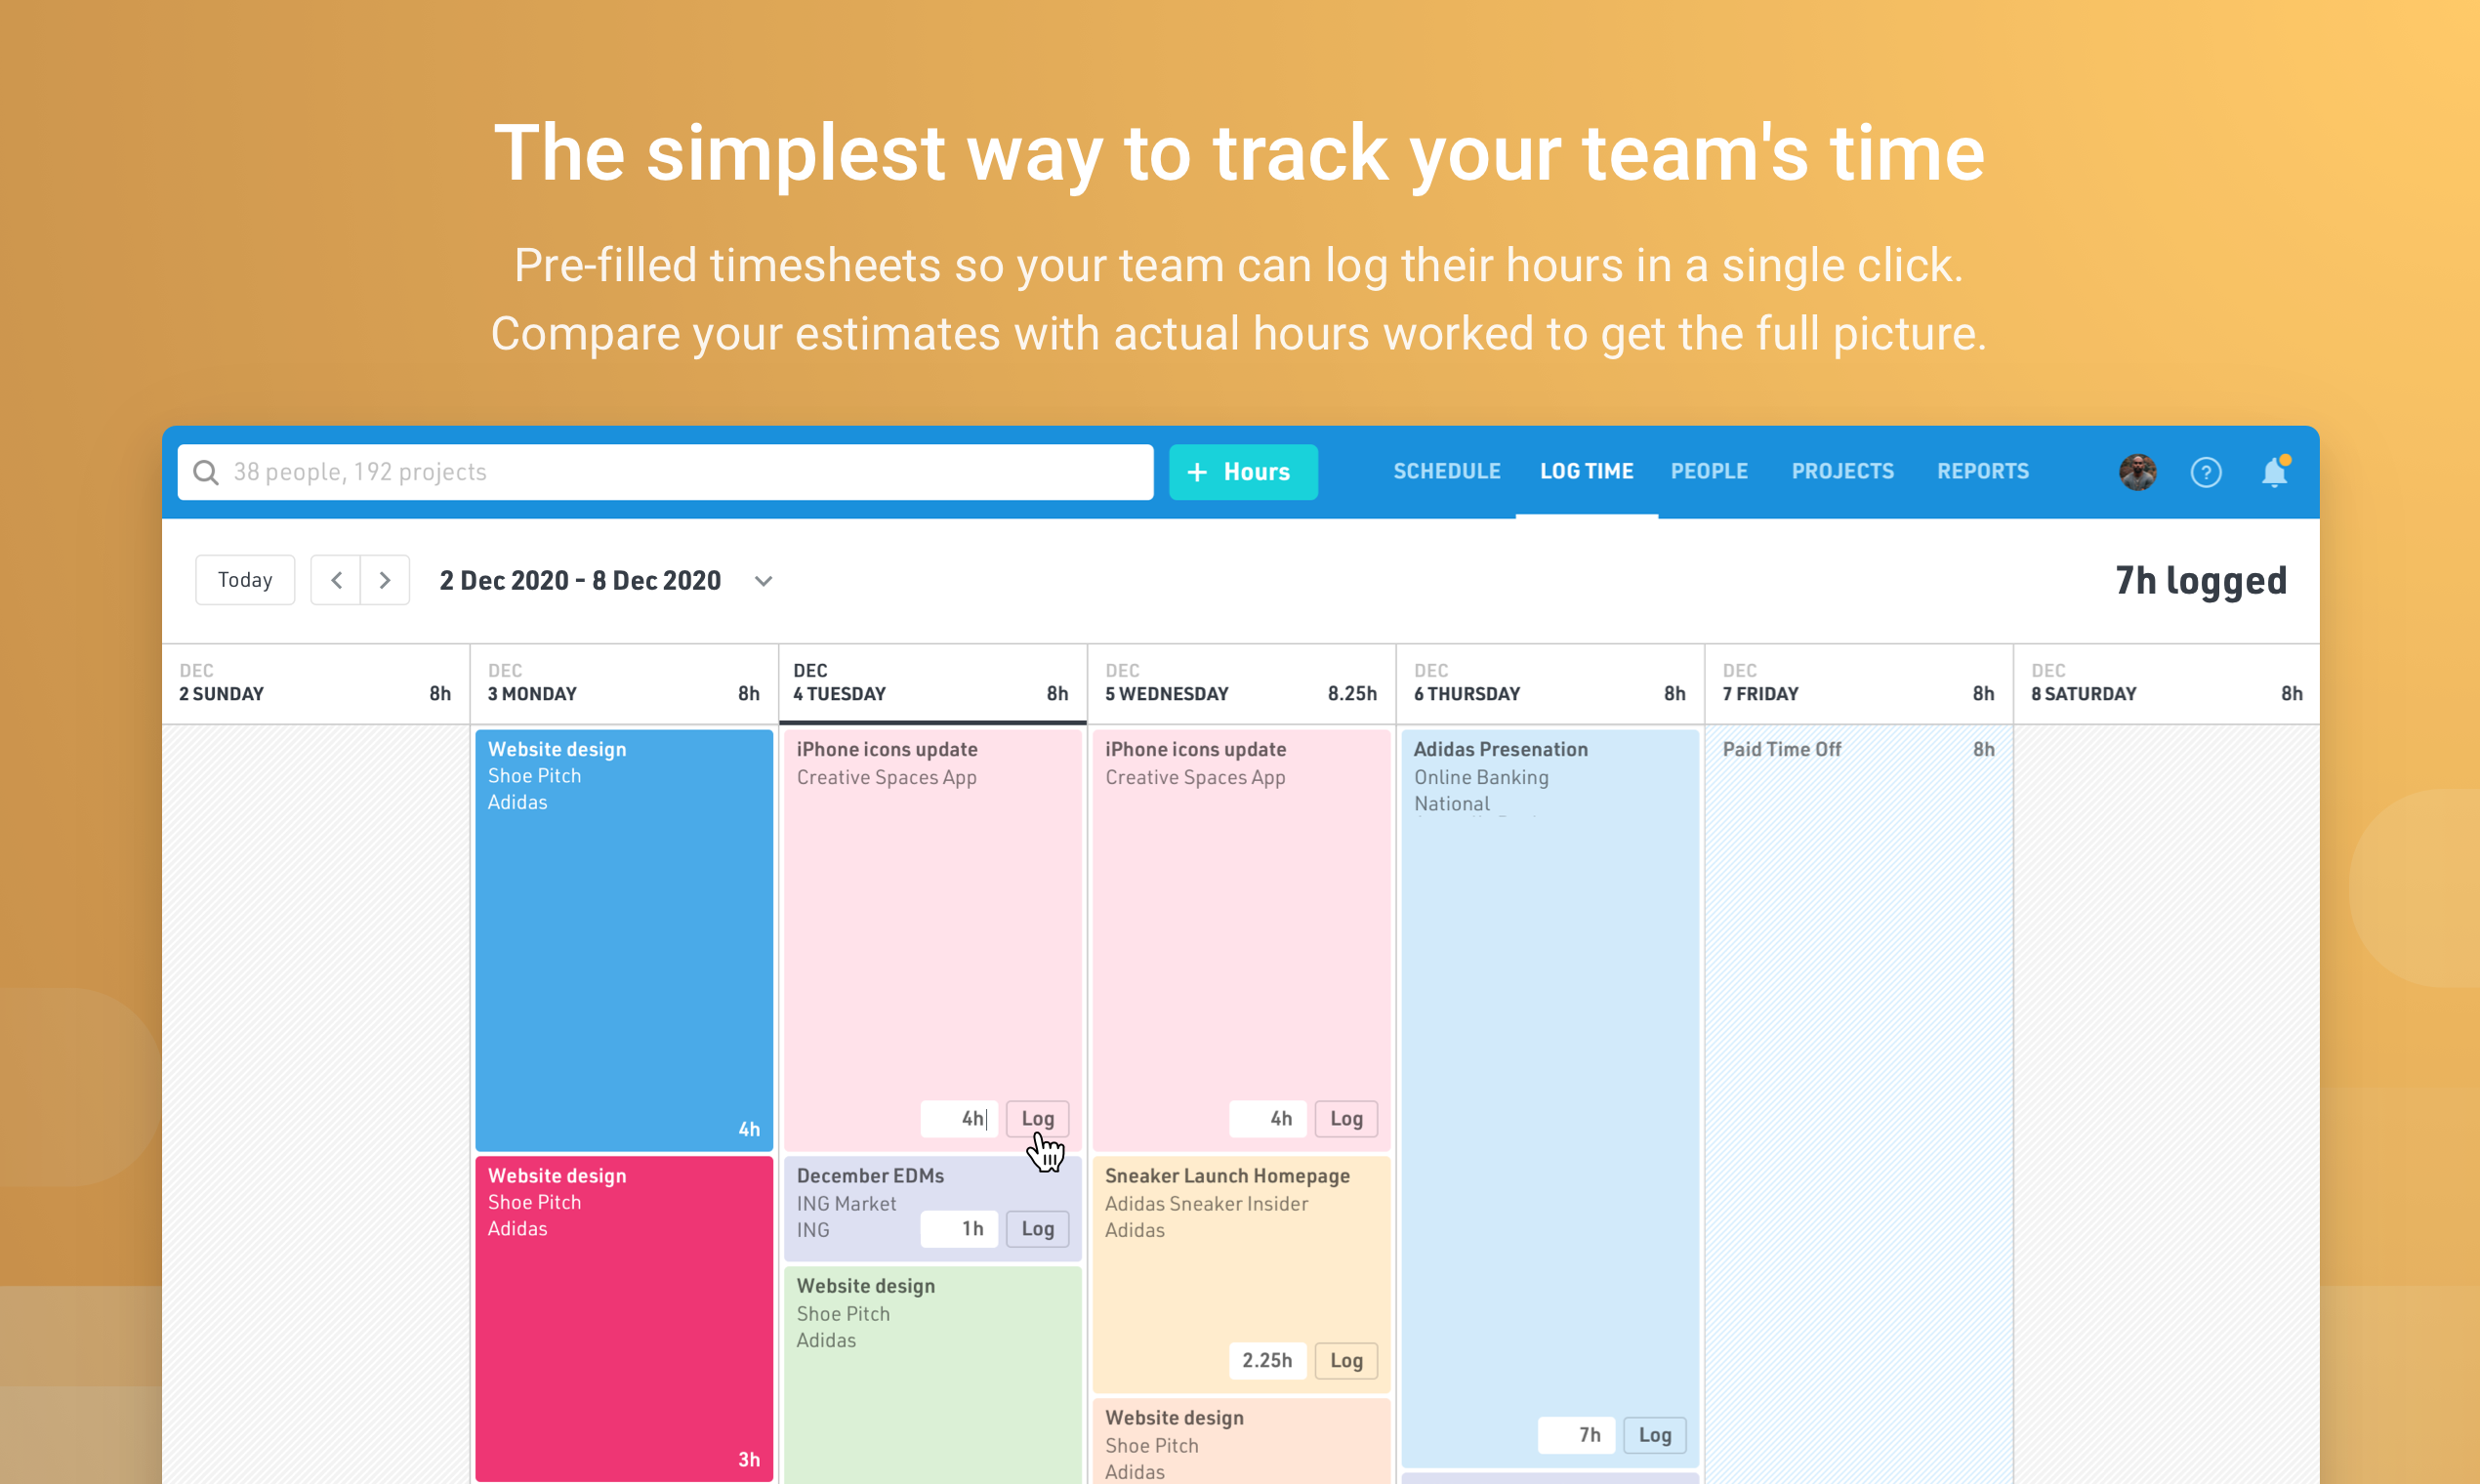 Float time tracking integrates with your resource schedule to give you a clear picture of your team's estimated time vs. actuals. Timesheets are pre-filled based on your team's planned workload, and hours can be logged in a single-click.